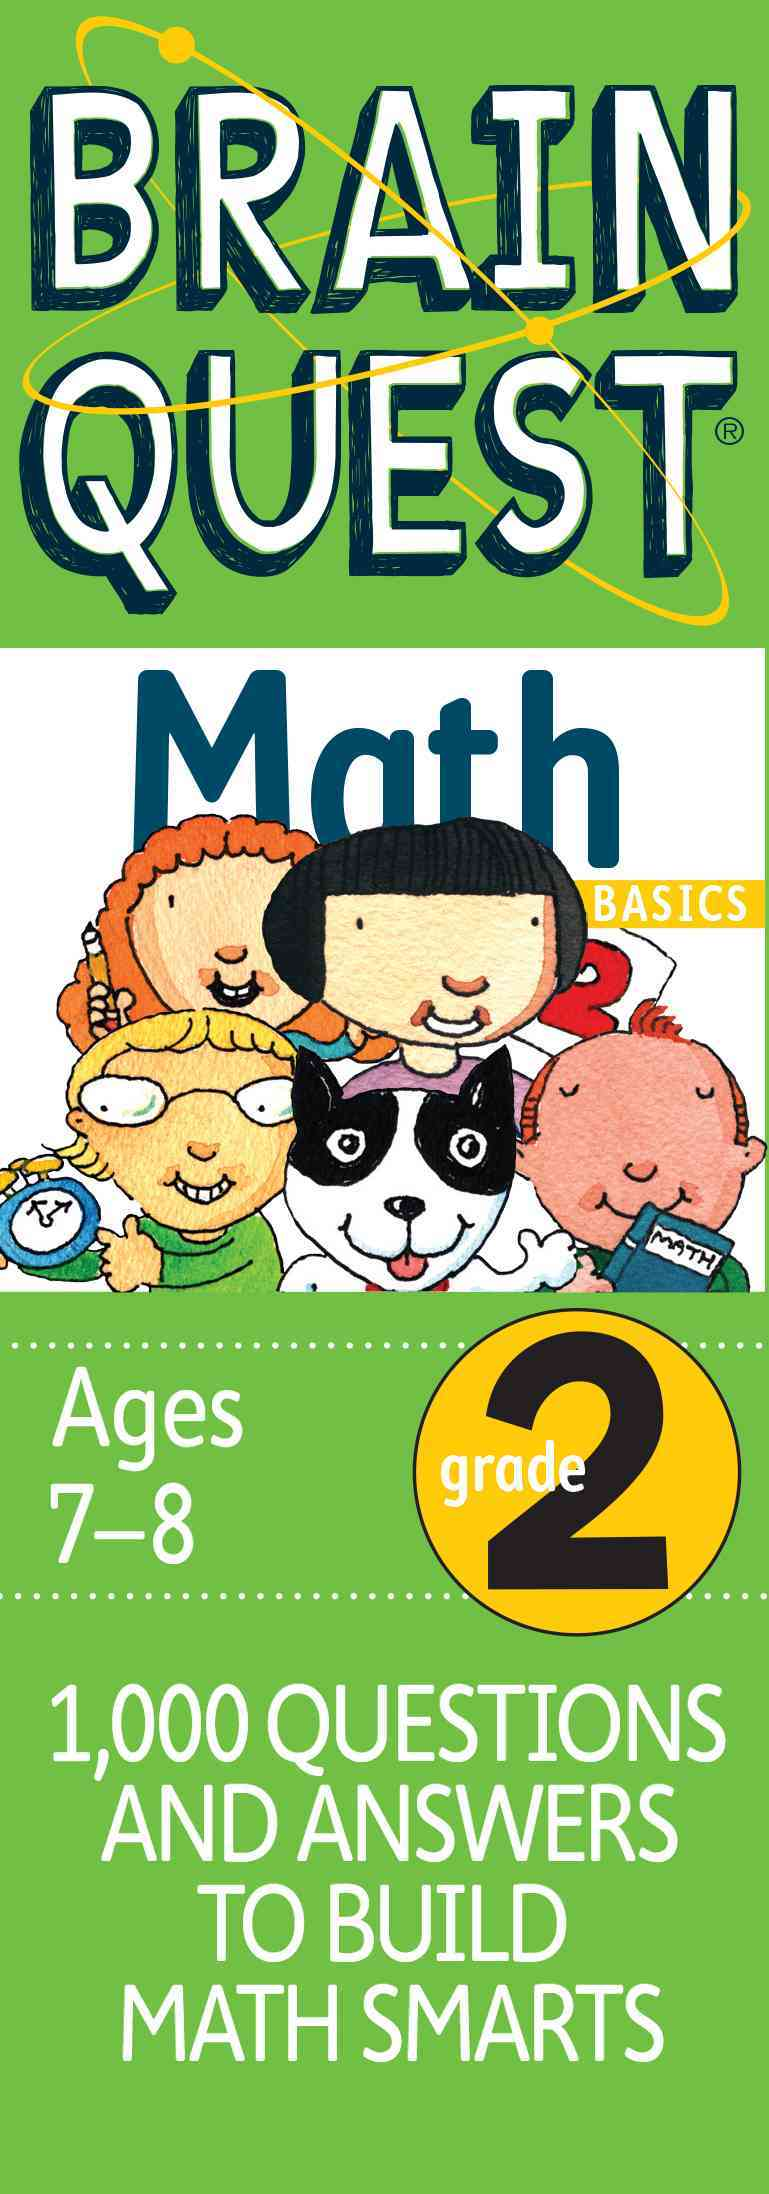 Brain Quest Math Basics Grade 2: 1,000 Questions & Answers to Build Math Smarts, Ages 7-8 (Cards)